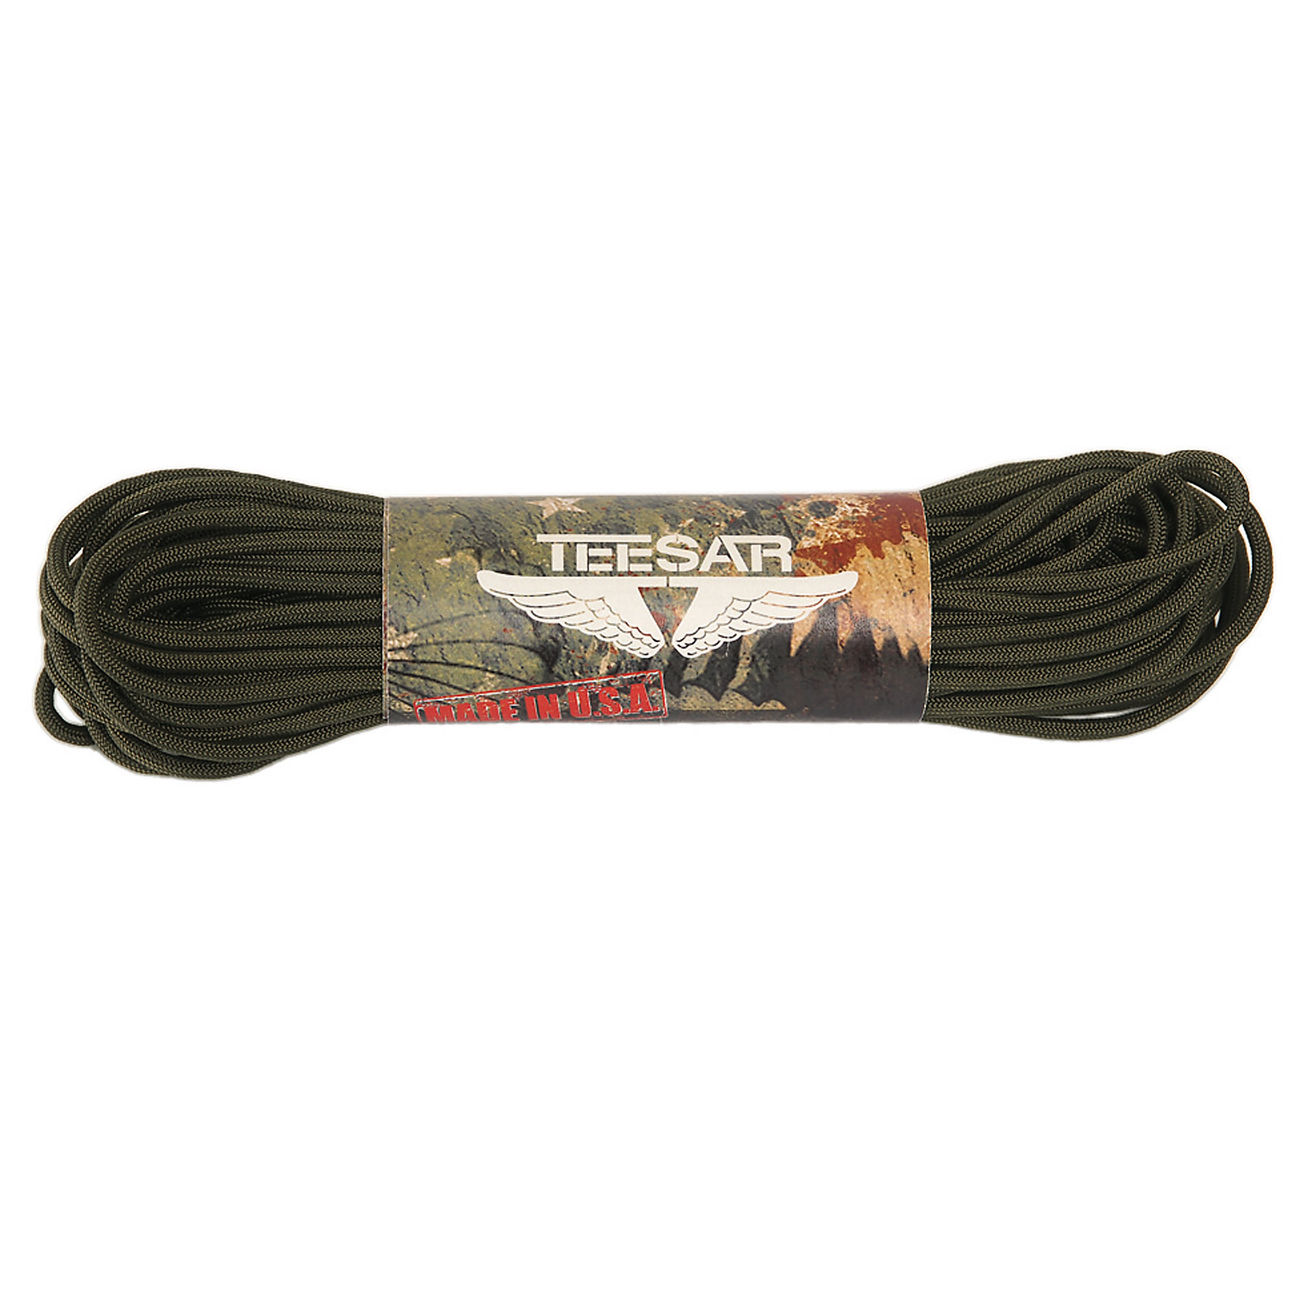 Teesar US Fallschirmleine 550 Nylon 100 ft. oliv 0